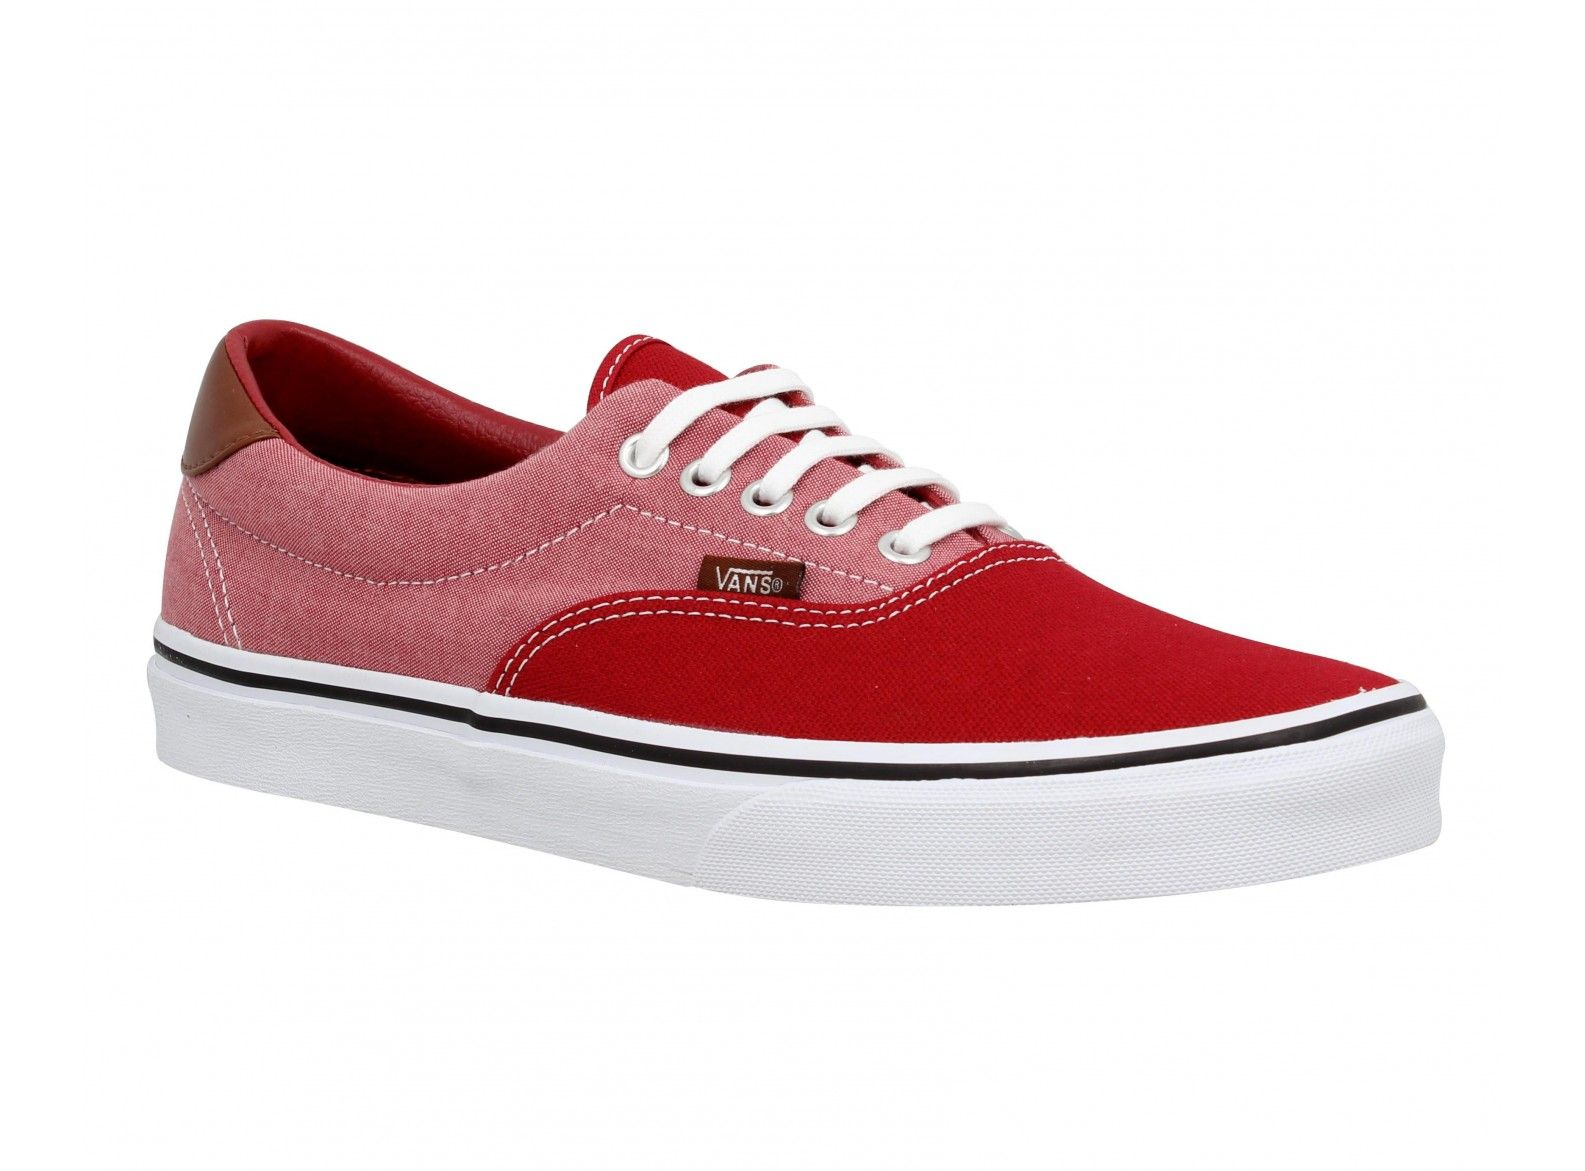 Era 59 Chaussures Femme Toile Chambray Vans Rouge RAwgqdRx